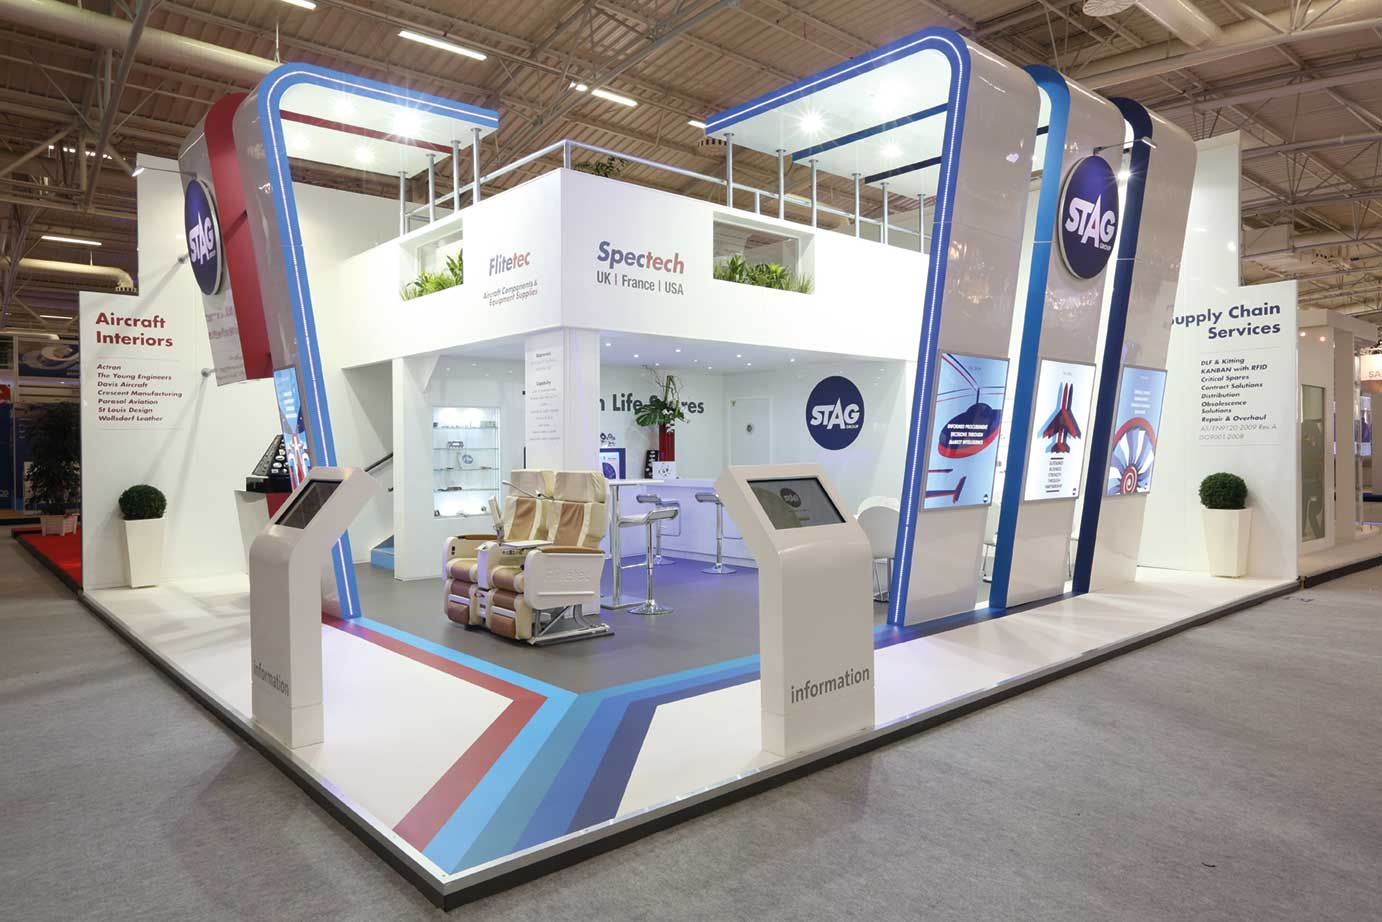 Exhibition stand graphics - one of the creative agency services provided by Design Inc